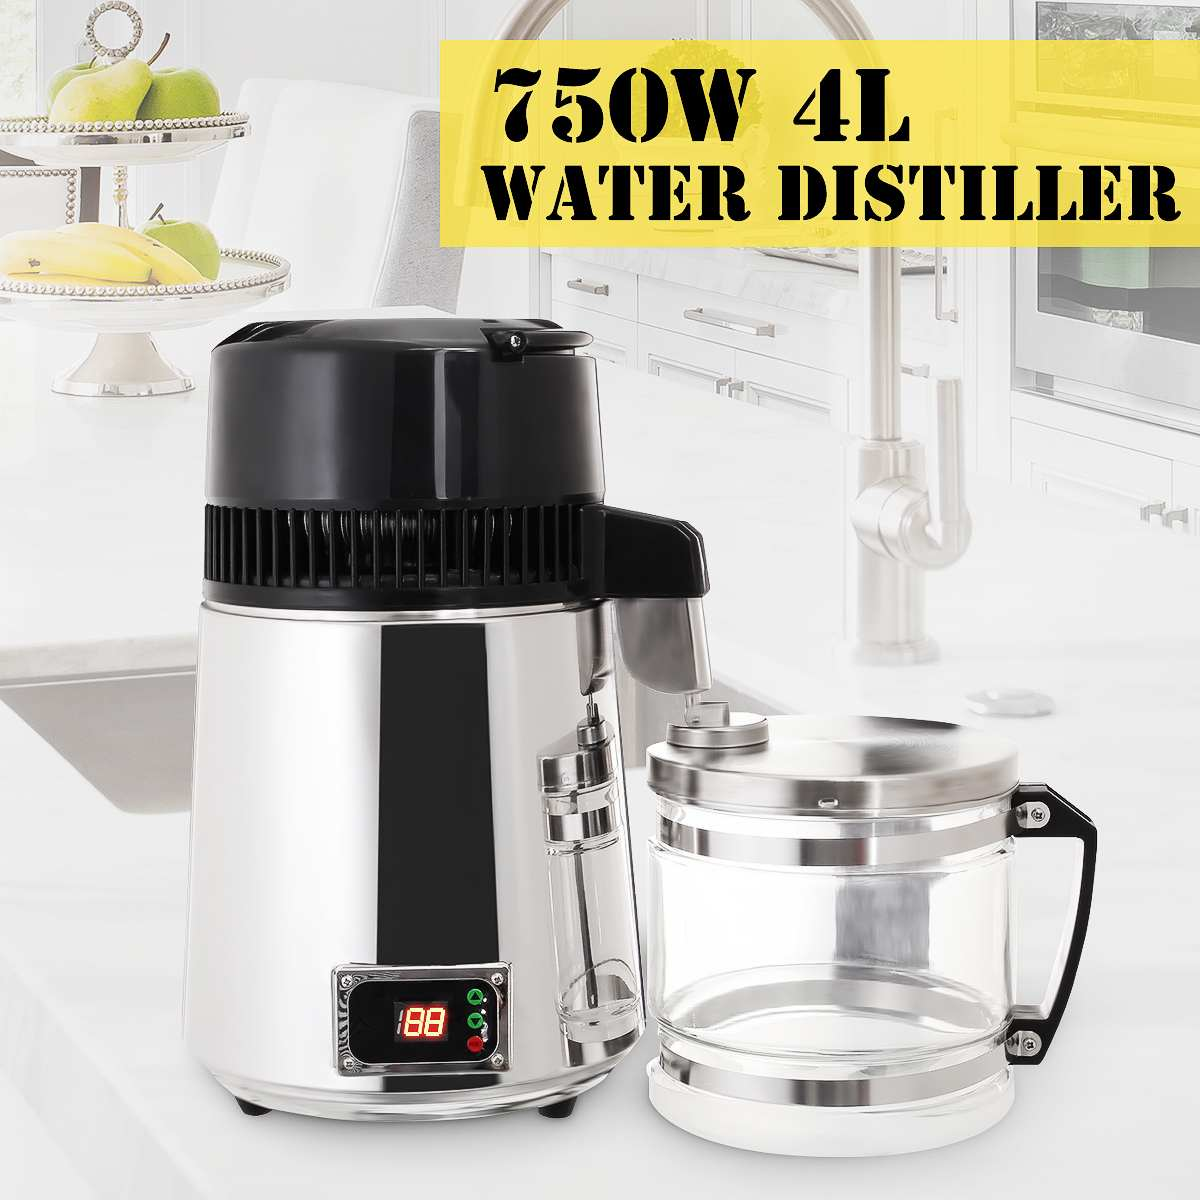 4L 750W Water Distiller Household Distilled Pure Water Machine Distillation Purifier Filter Stainless Steel Water Filter AU Plug